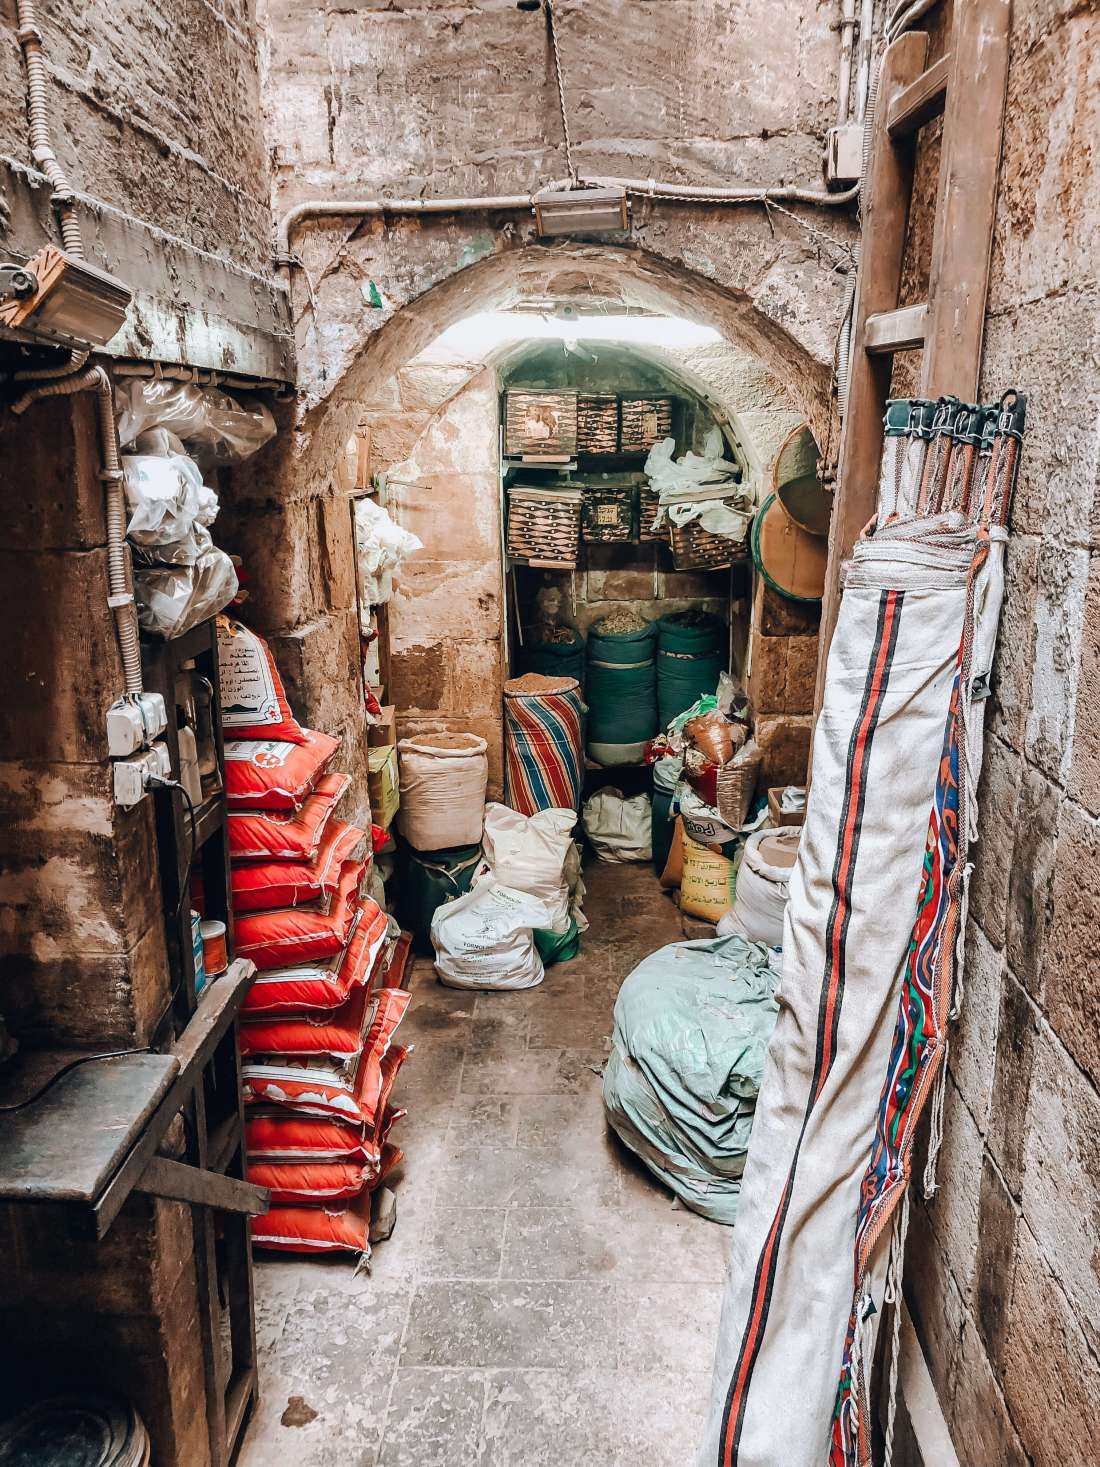 Bazaar shopping in Cairo